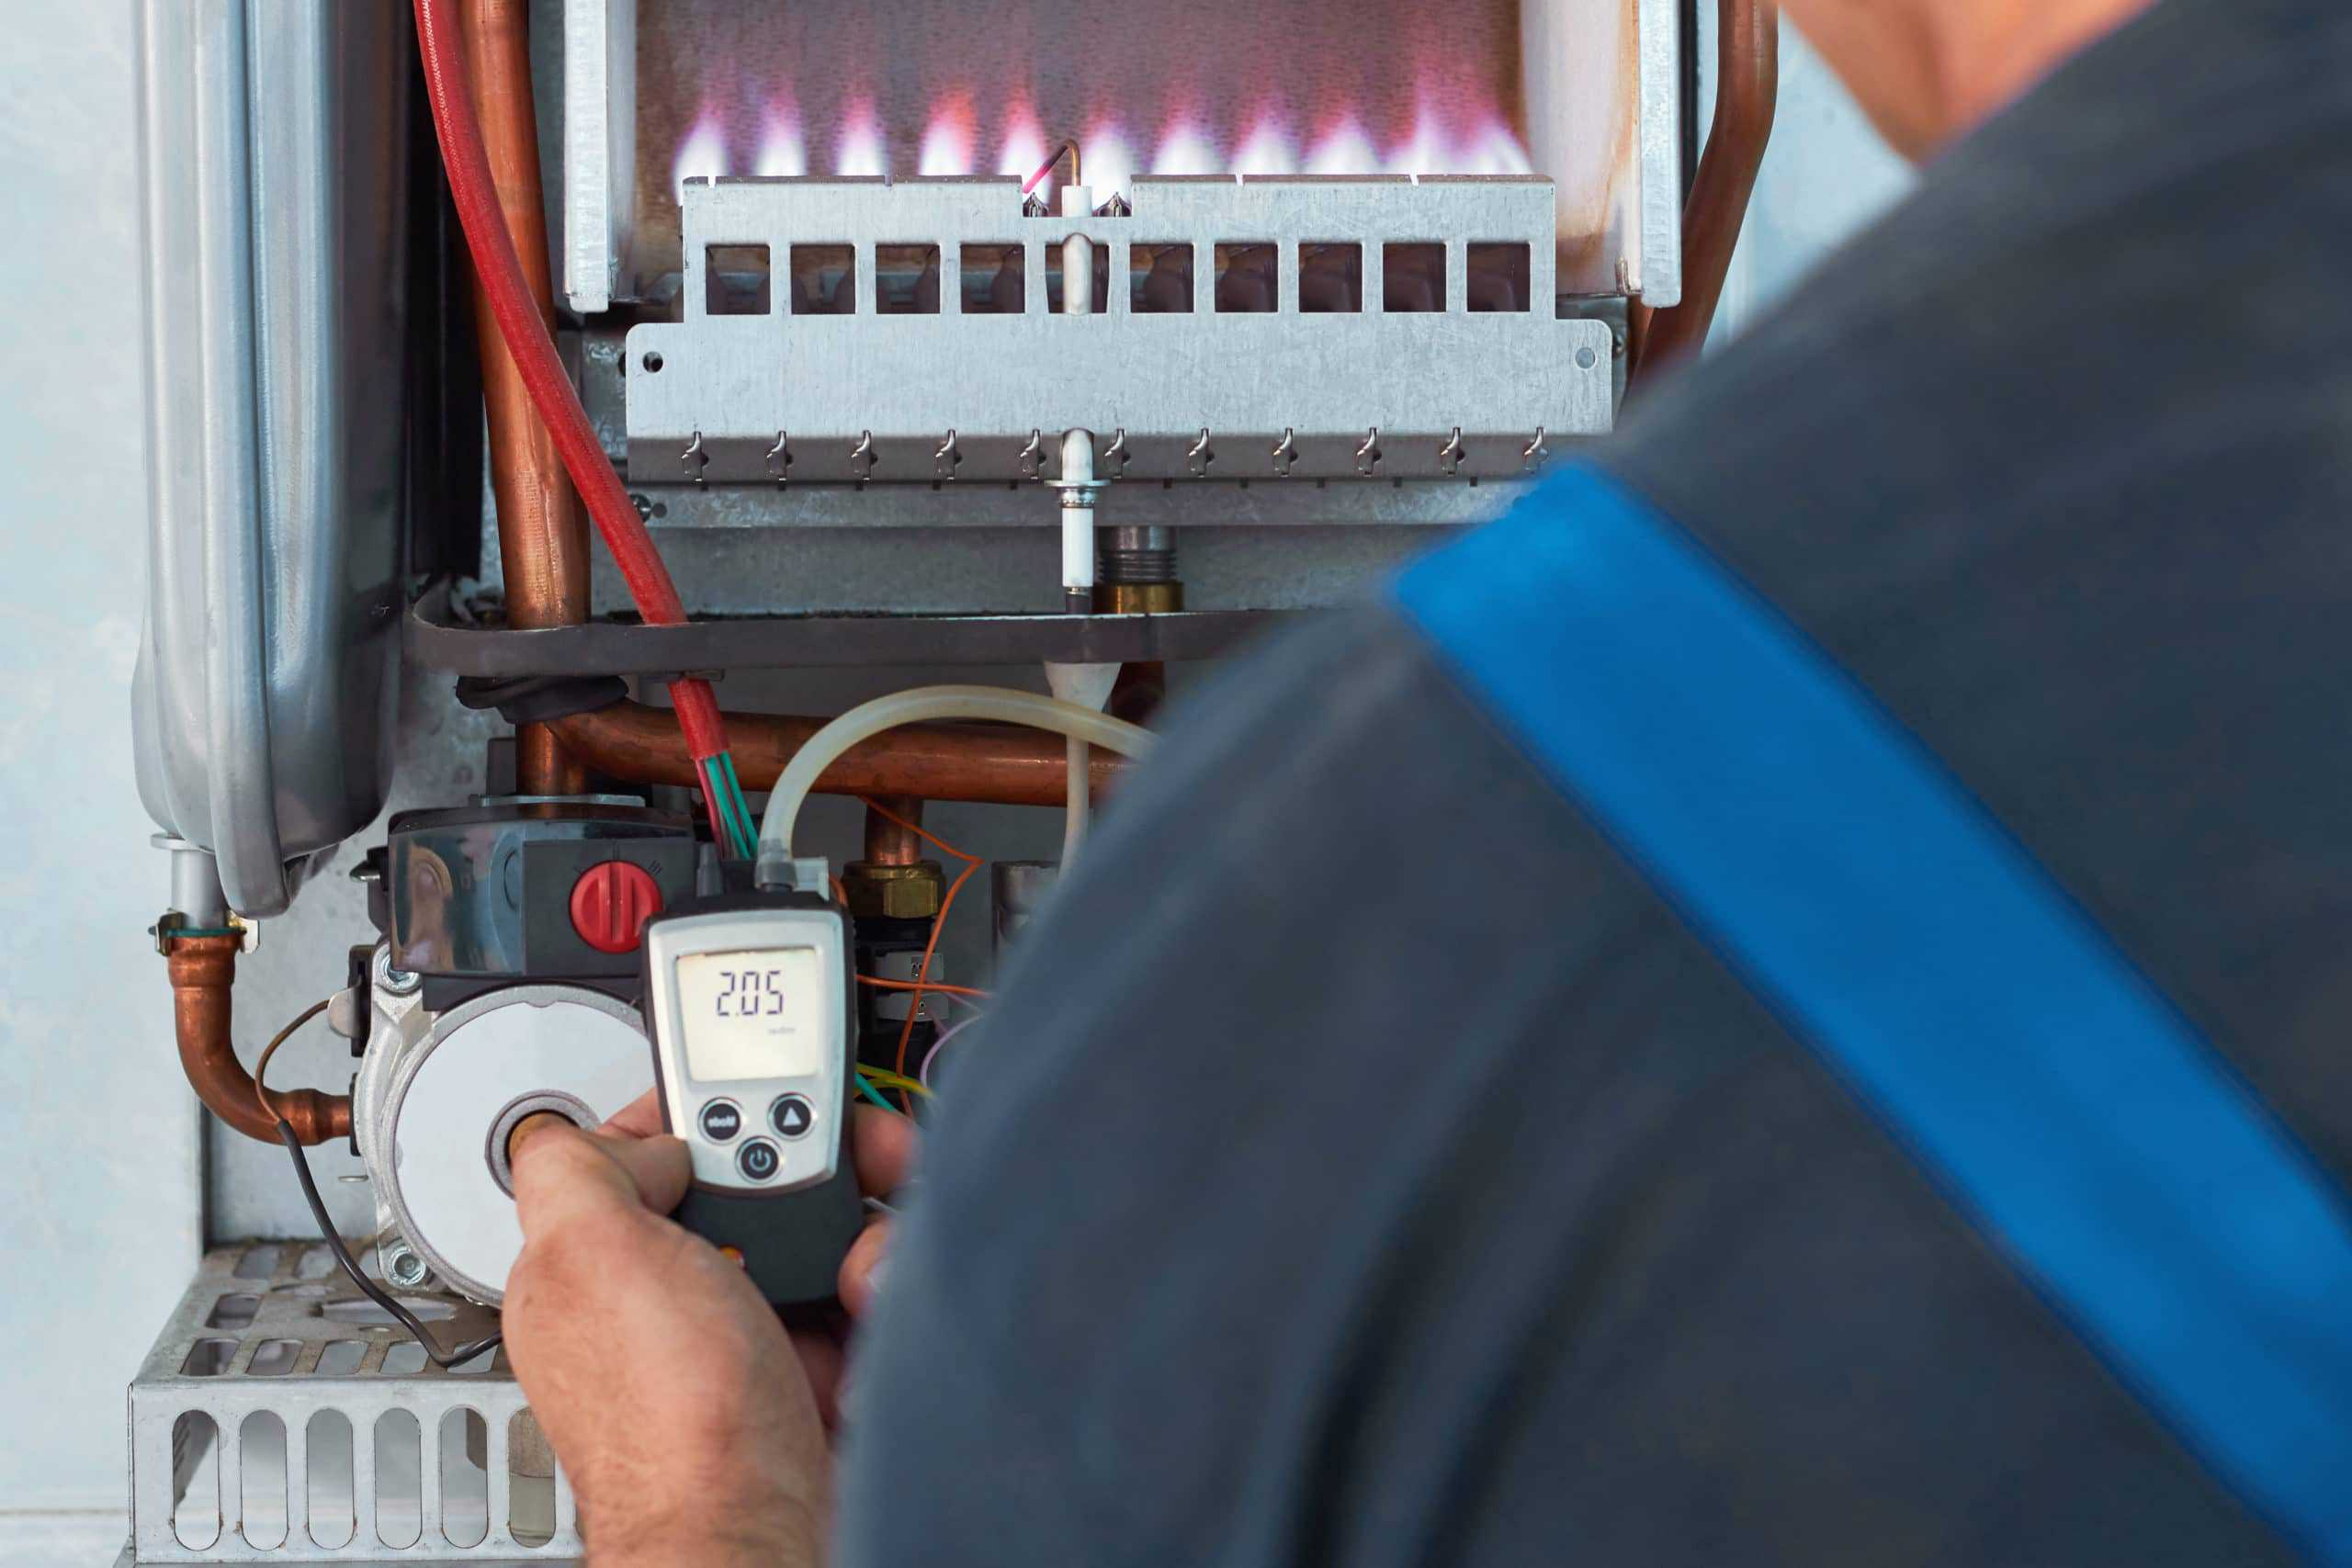 commercial plumbing using a tool to check a hot water system